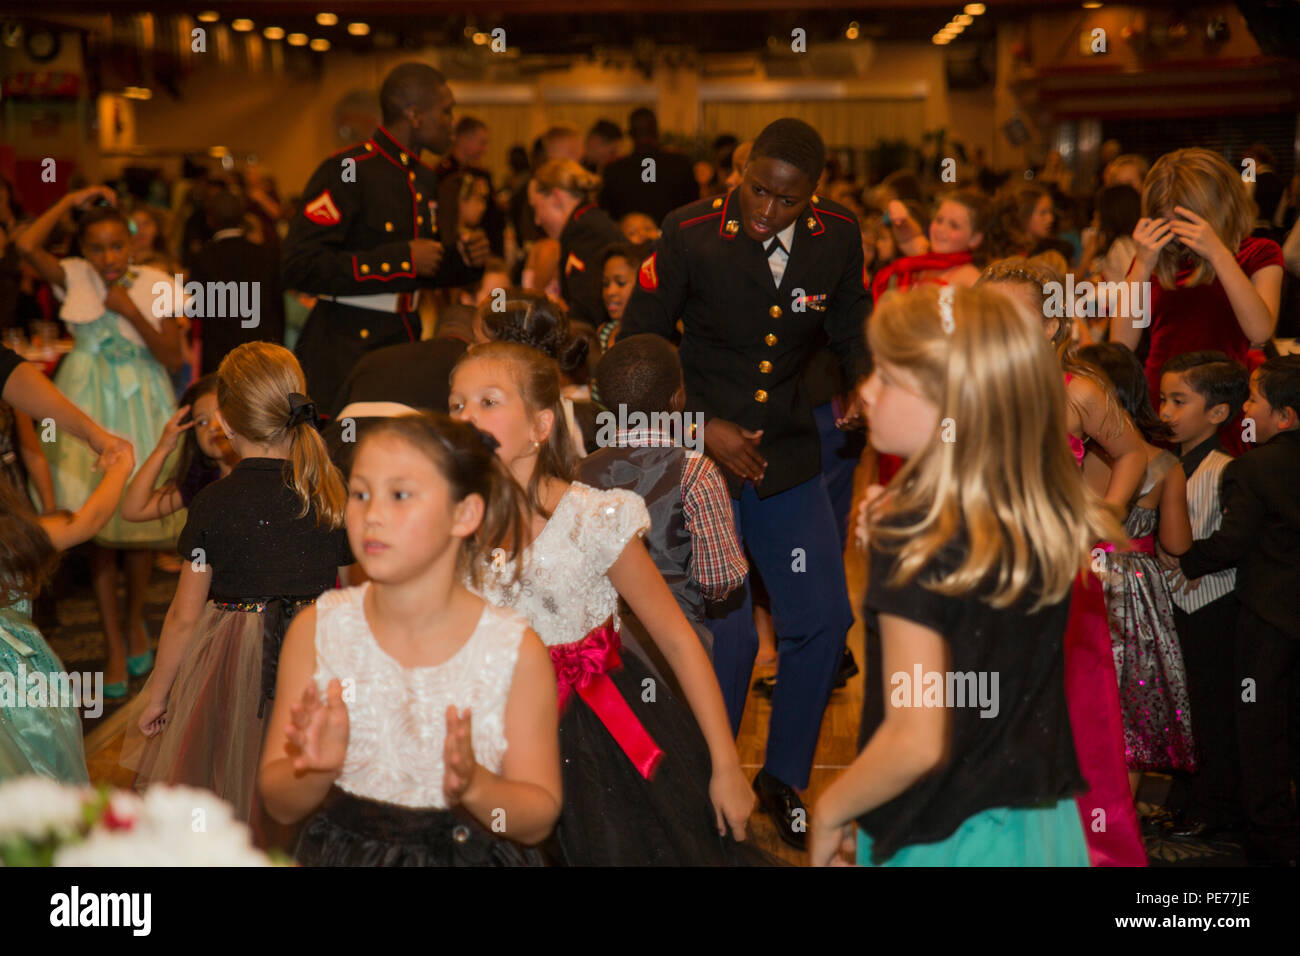 Marines and children dance during the Mini-Marine Corps Ball in the Club Iwakuni ballroom at Marine Corps Air Station Iwakuni, Japan, Oct. 23, 2015. Children dressed up, danced, ate and experienced a Marine Corps tradition during the event. The children, ranging from 5 to 12 years old, were afforded the opportunity to learn about the traditions of the Marine Corps Ball including, the cake cutting ceremony where the oldest and youngest Marine present are presented the first slice of cake. (U.S. Marine Corps photo by Pfc. Aaron Henson/Released) - Stock Image